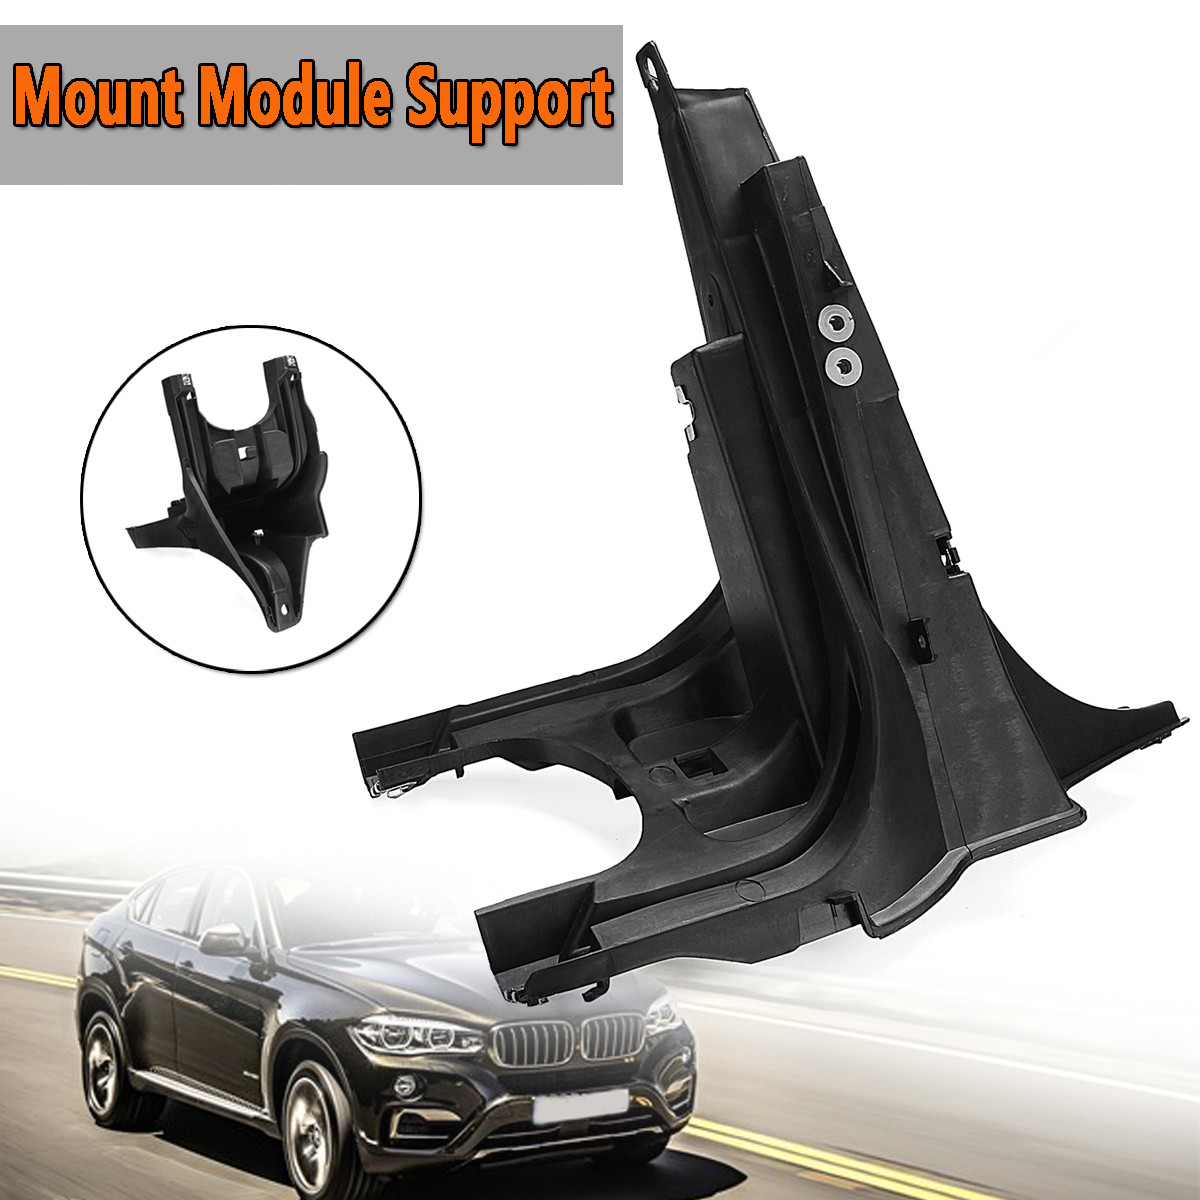 Mount Bracket Module Support For BMW X5 E70 X6 E71 Front Left/Right For Fender Bumper Lower Car Styling Frame Adapter ModuleMount Bracket Module Support For BMW X5 E70 X6 E71 Front Left/Right For Fender Bumper Lower Car Styling Frame Adapter Module